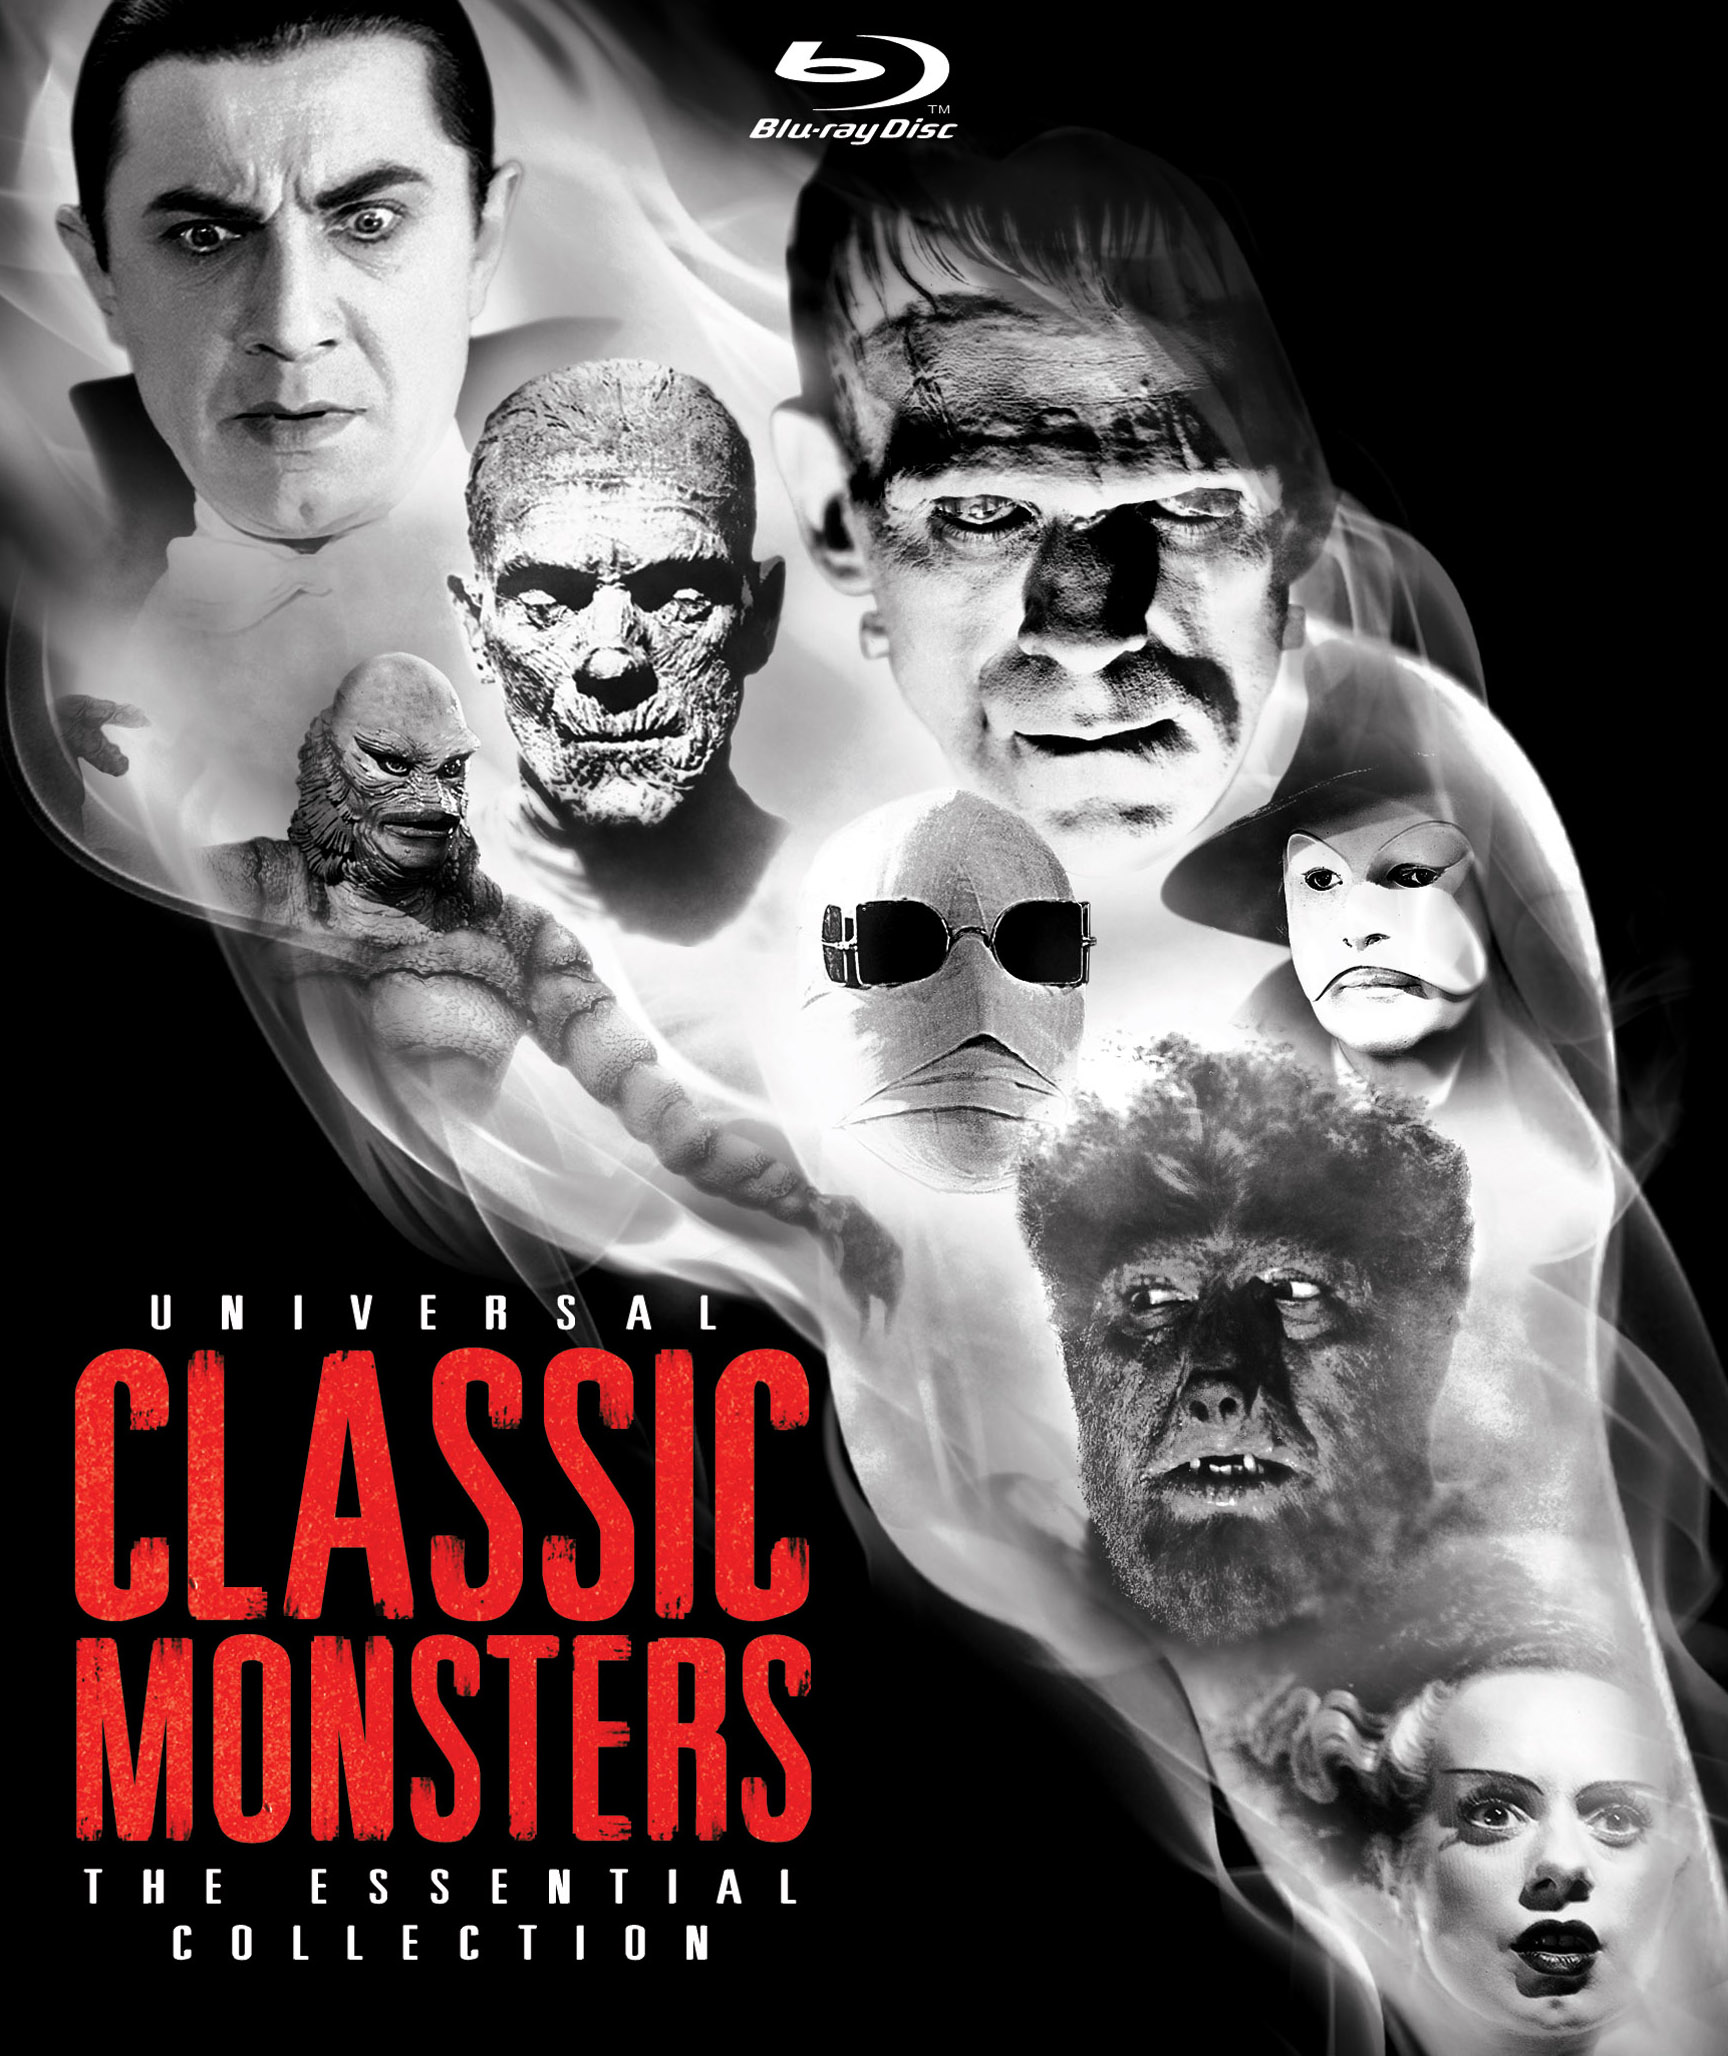 Blu Ray Review Universal Classic Monsters The Essential Collection Slant Magazine